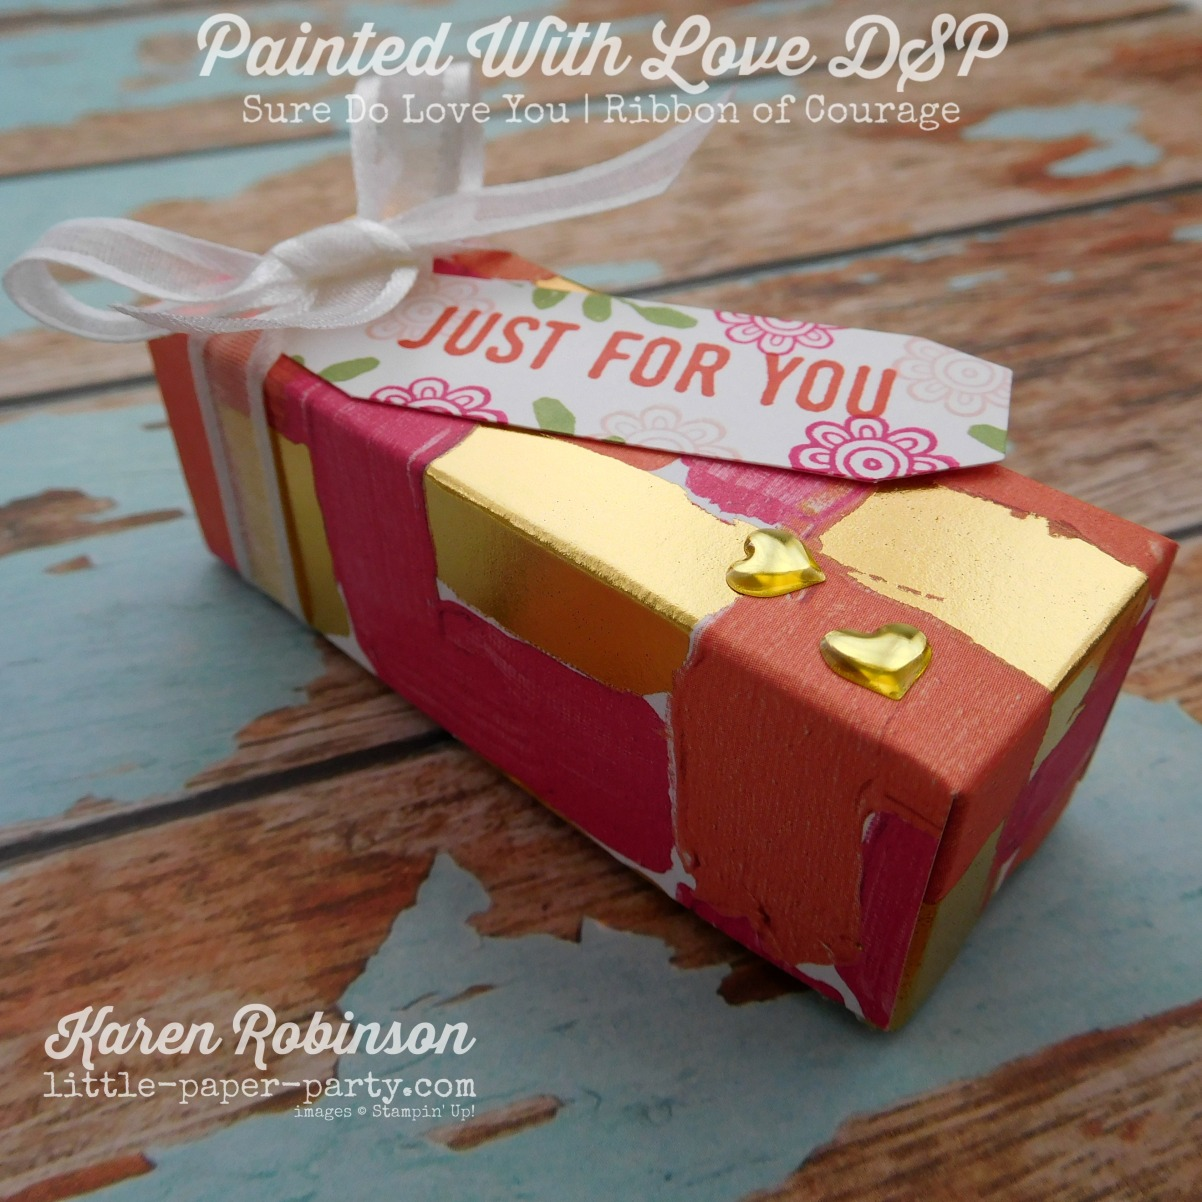 Little Paper Party, Painted With Love DSP, Sure Do Love You, Ribbon of Courage, #4.jpg